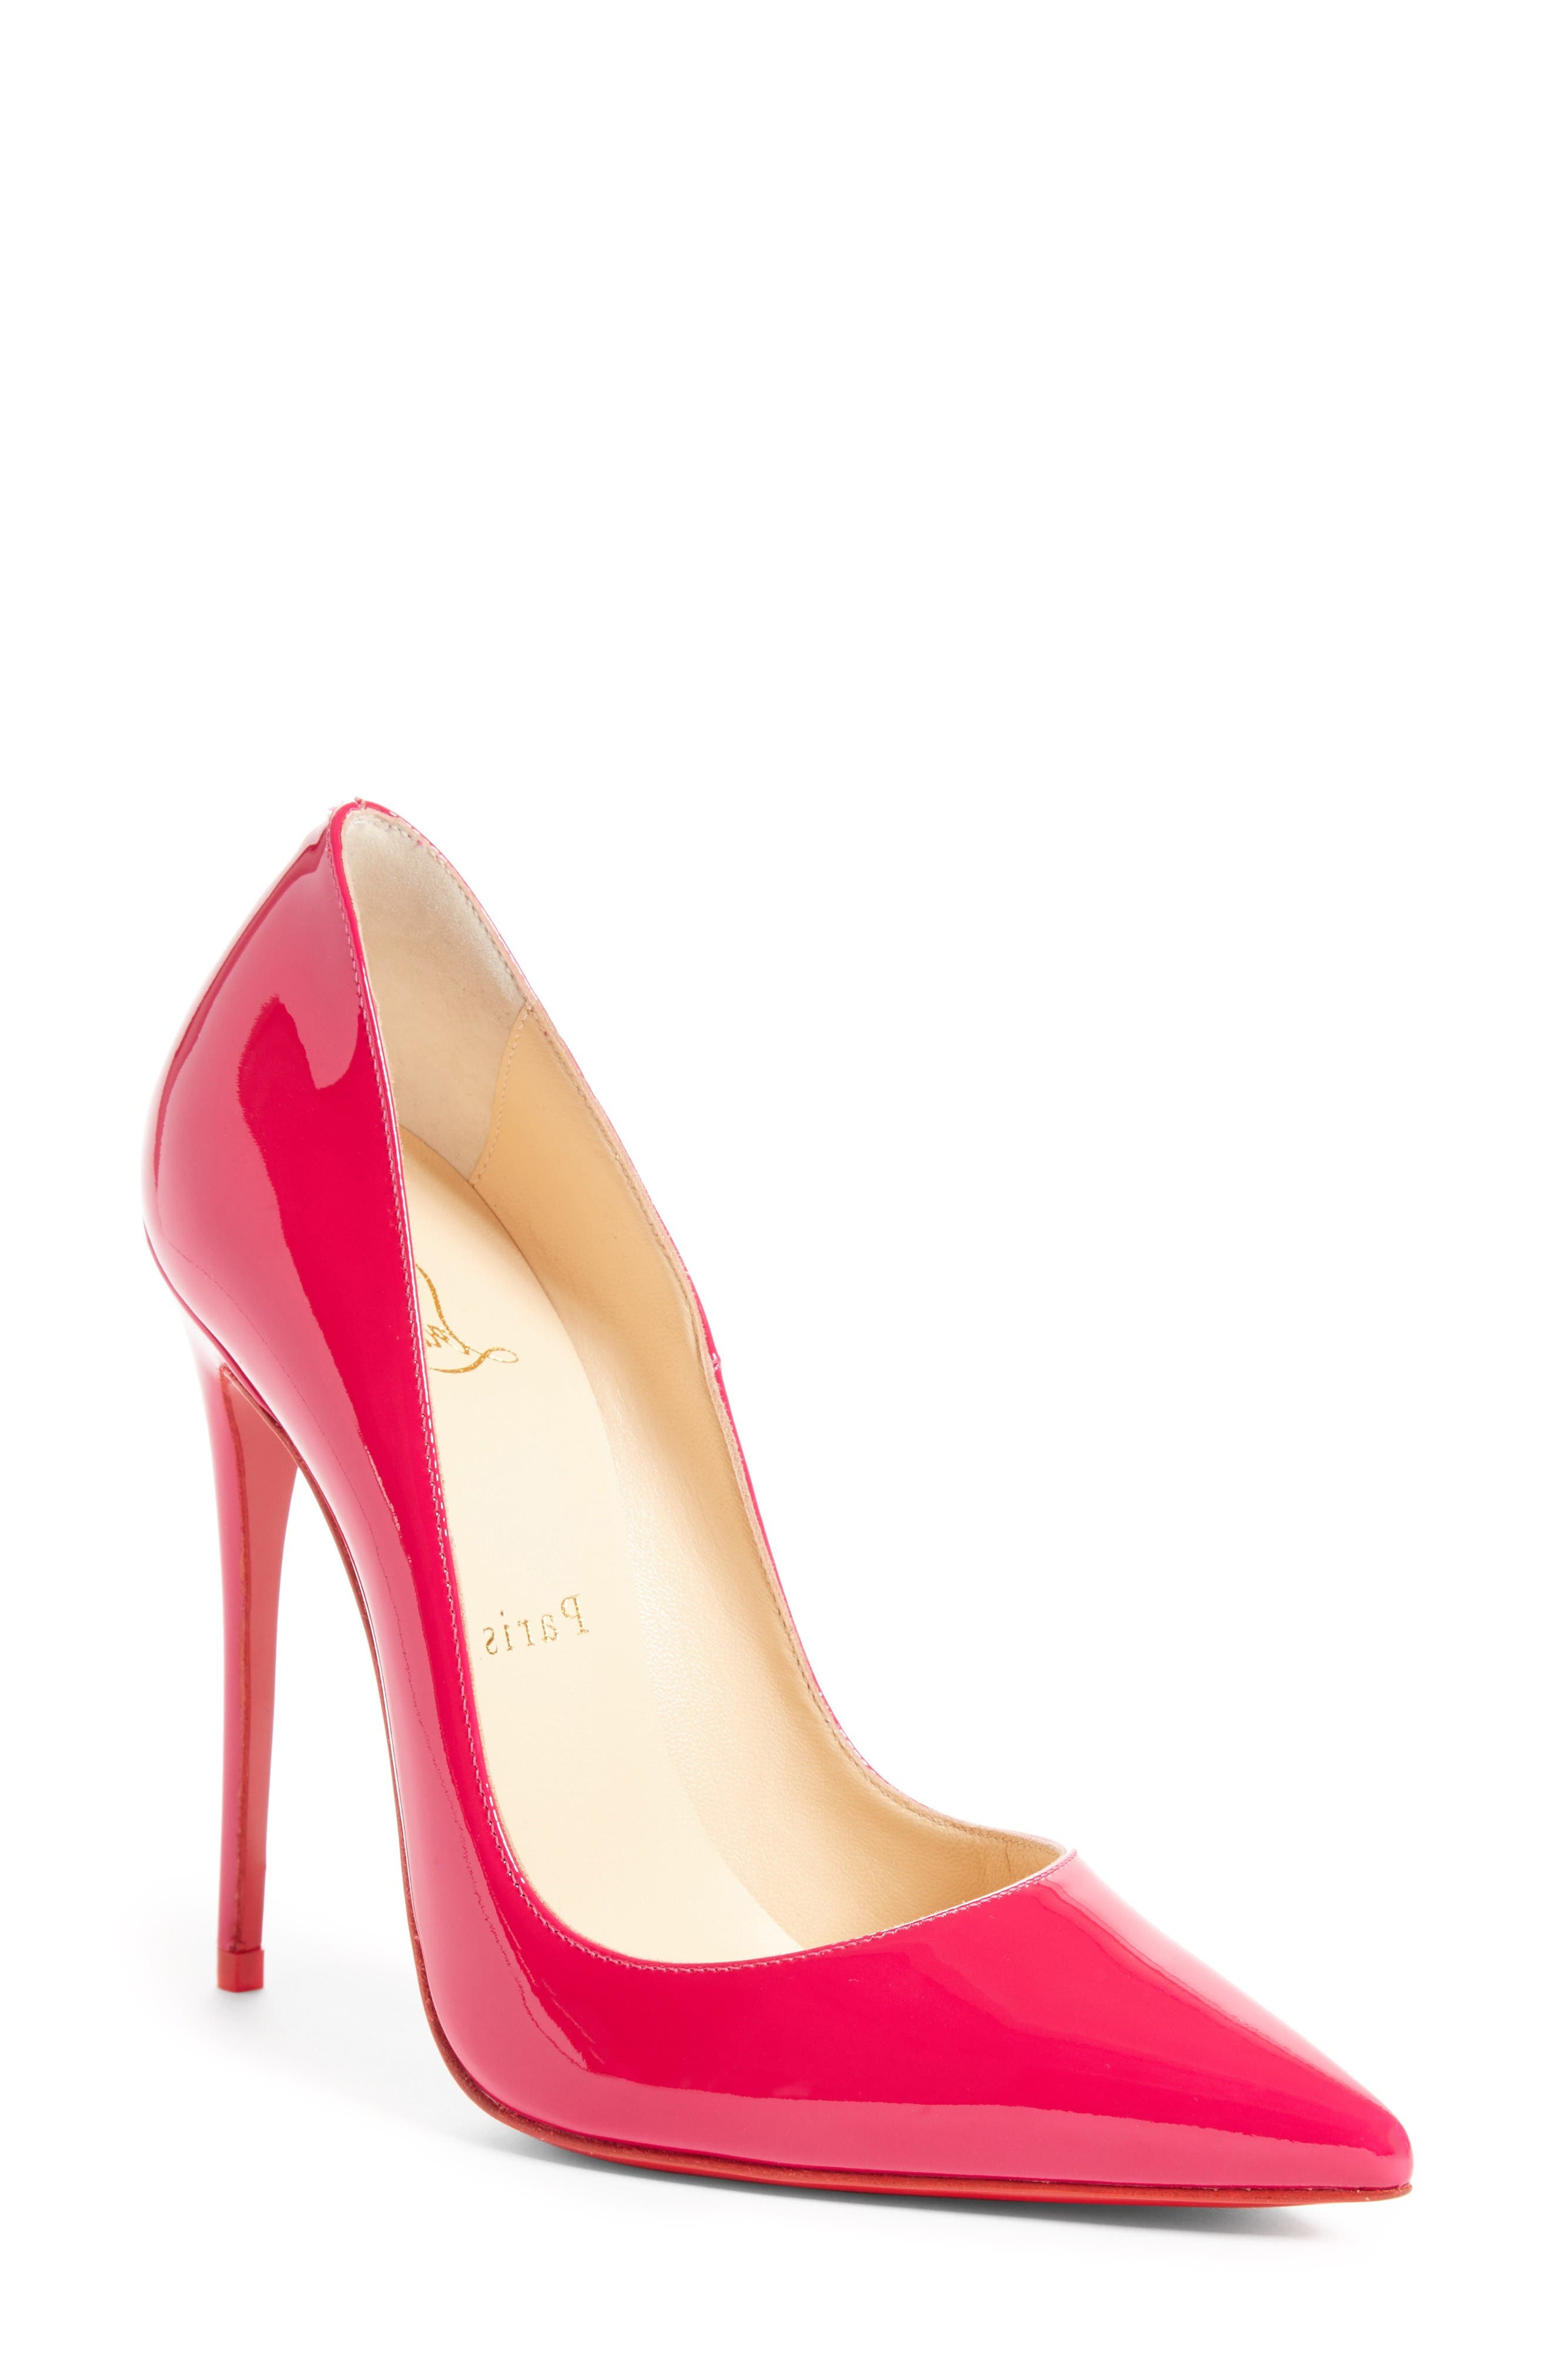 Main Image - Christian Louboutin 'So Kate' Pointy Toe Pump